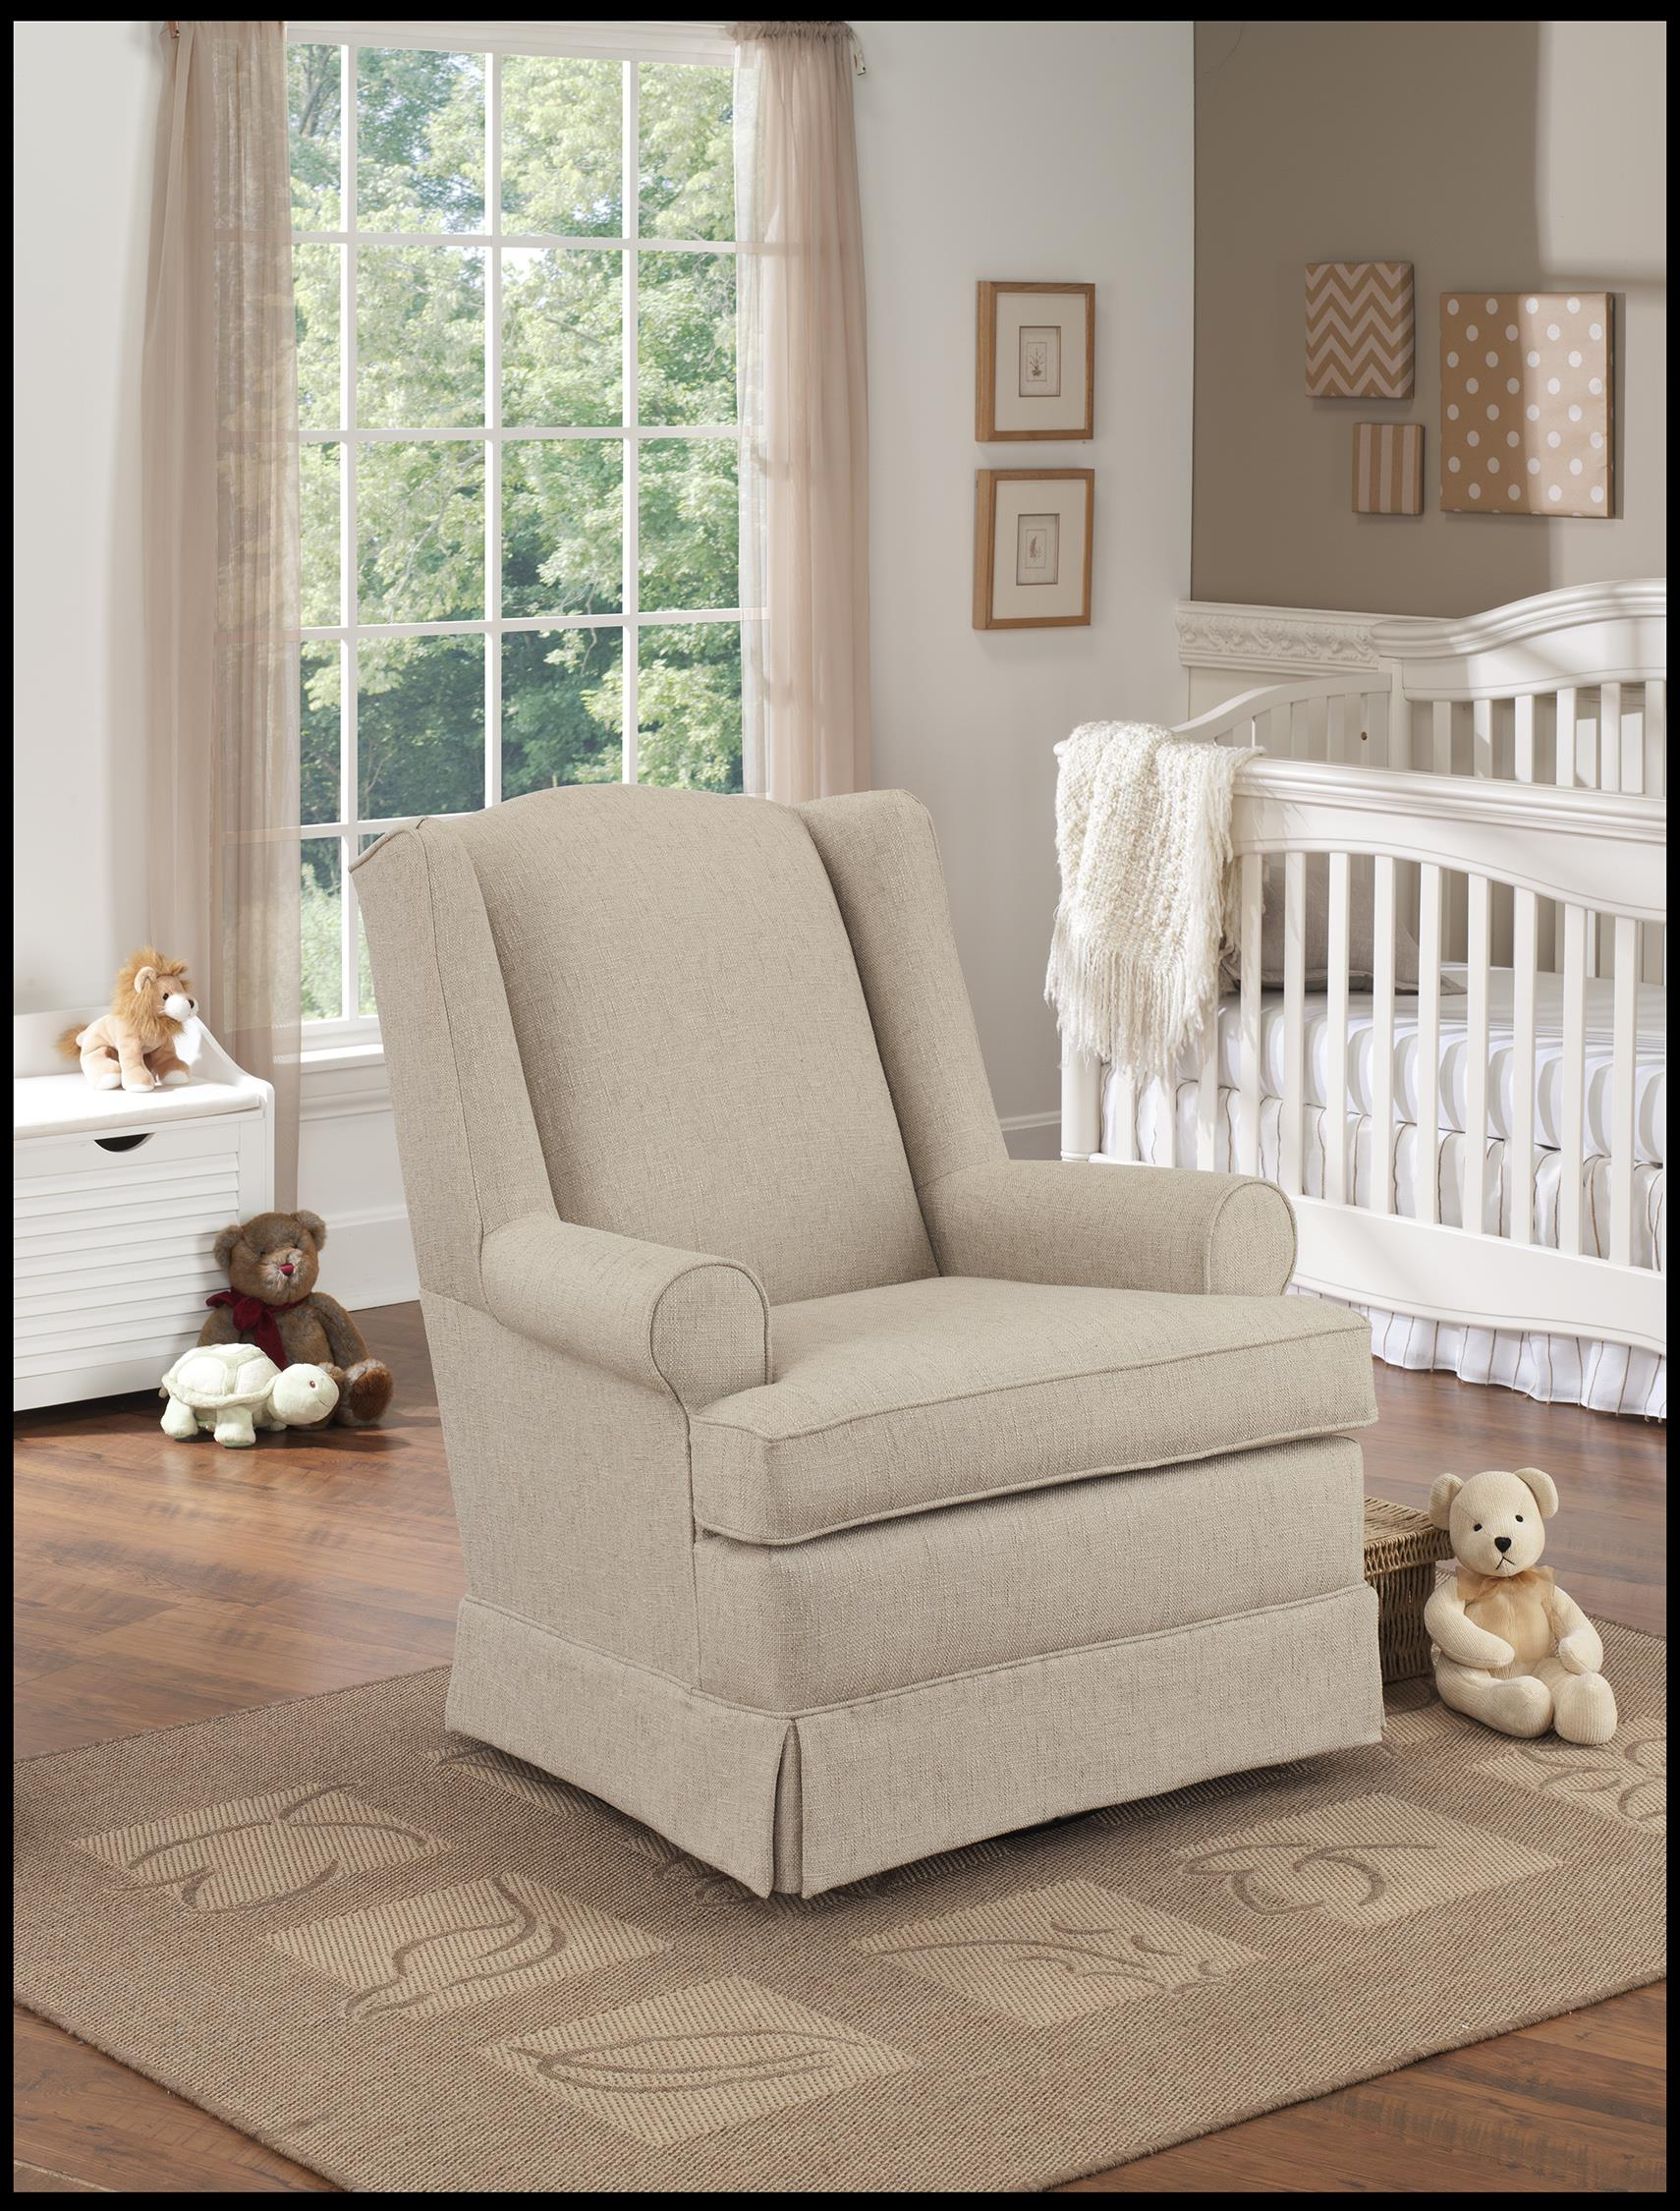 Best Chairs Storytime Series Storytime Swivel Chairs And